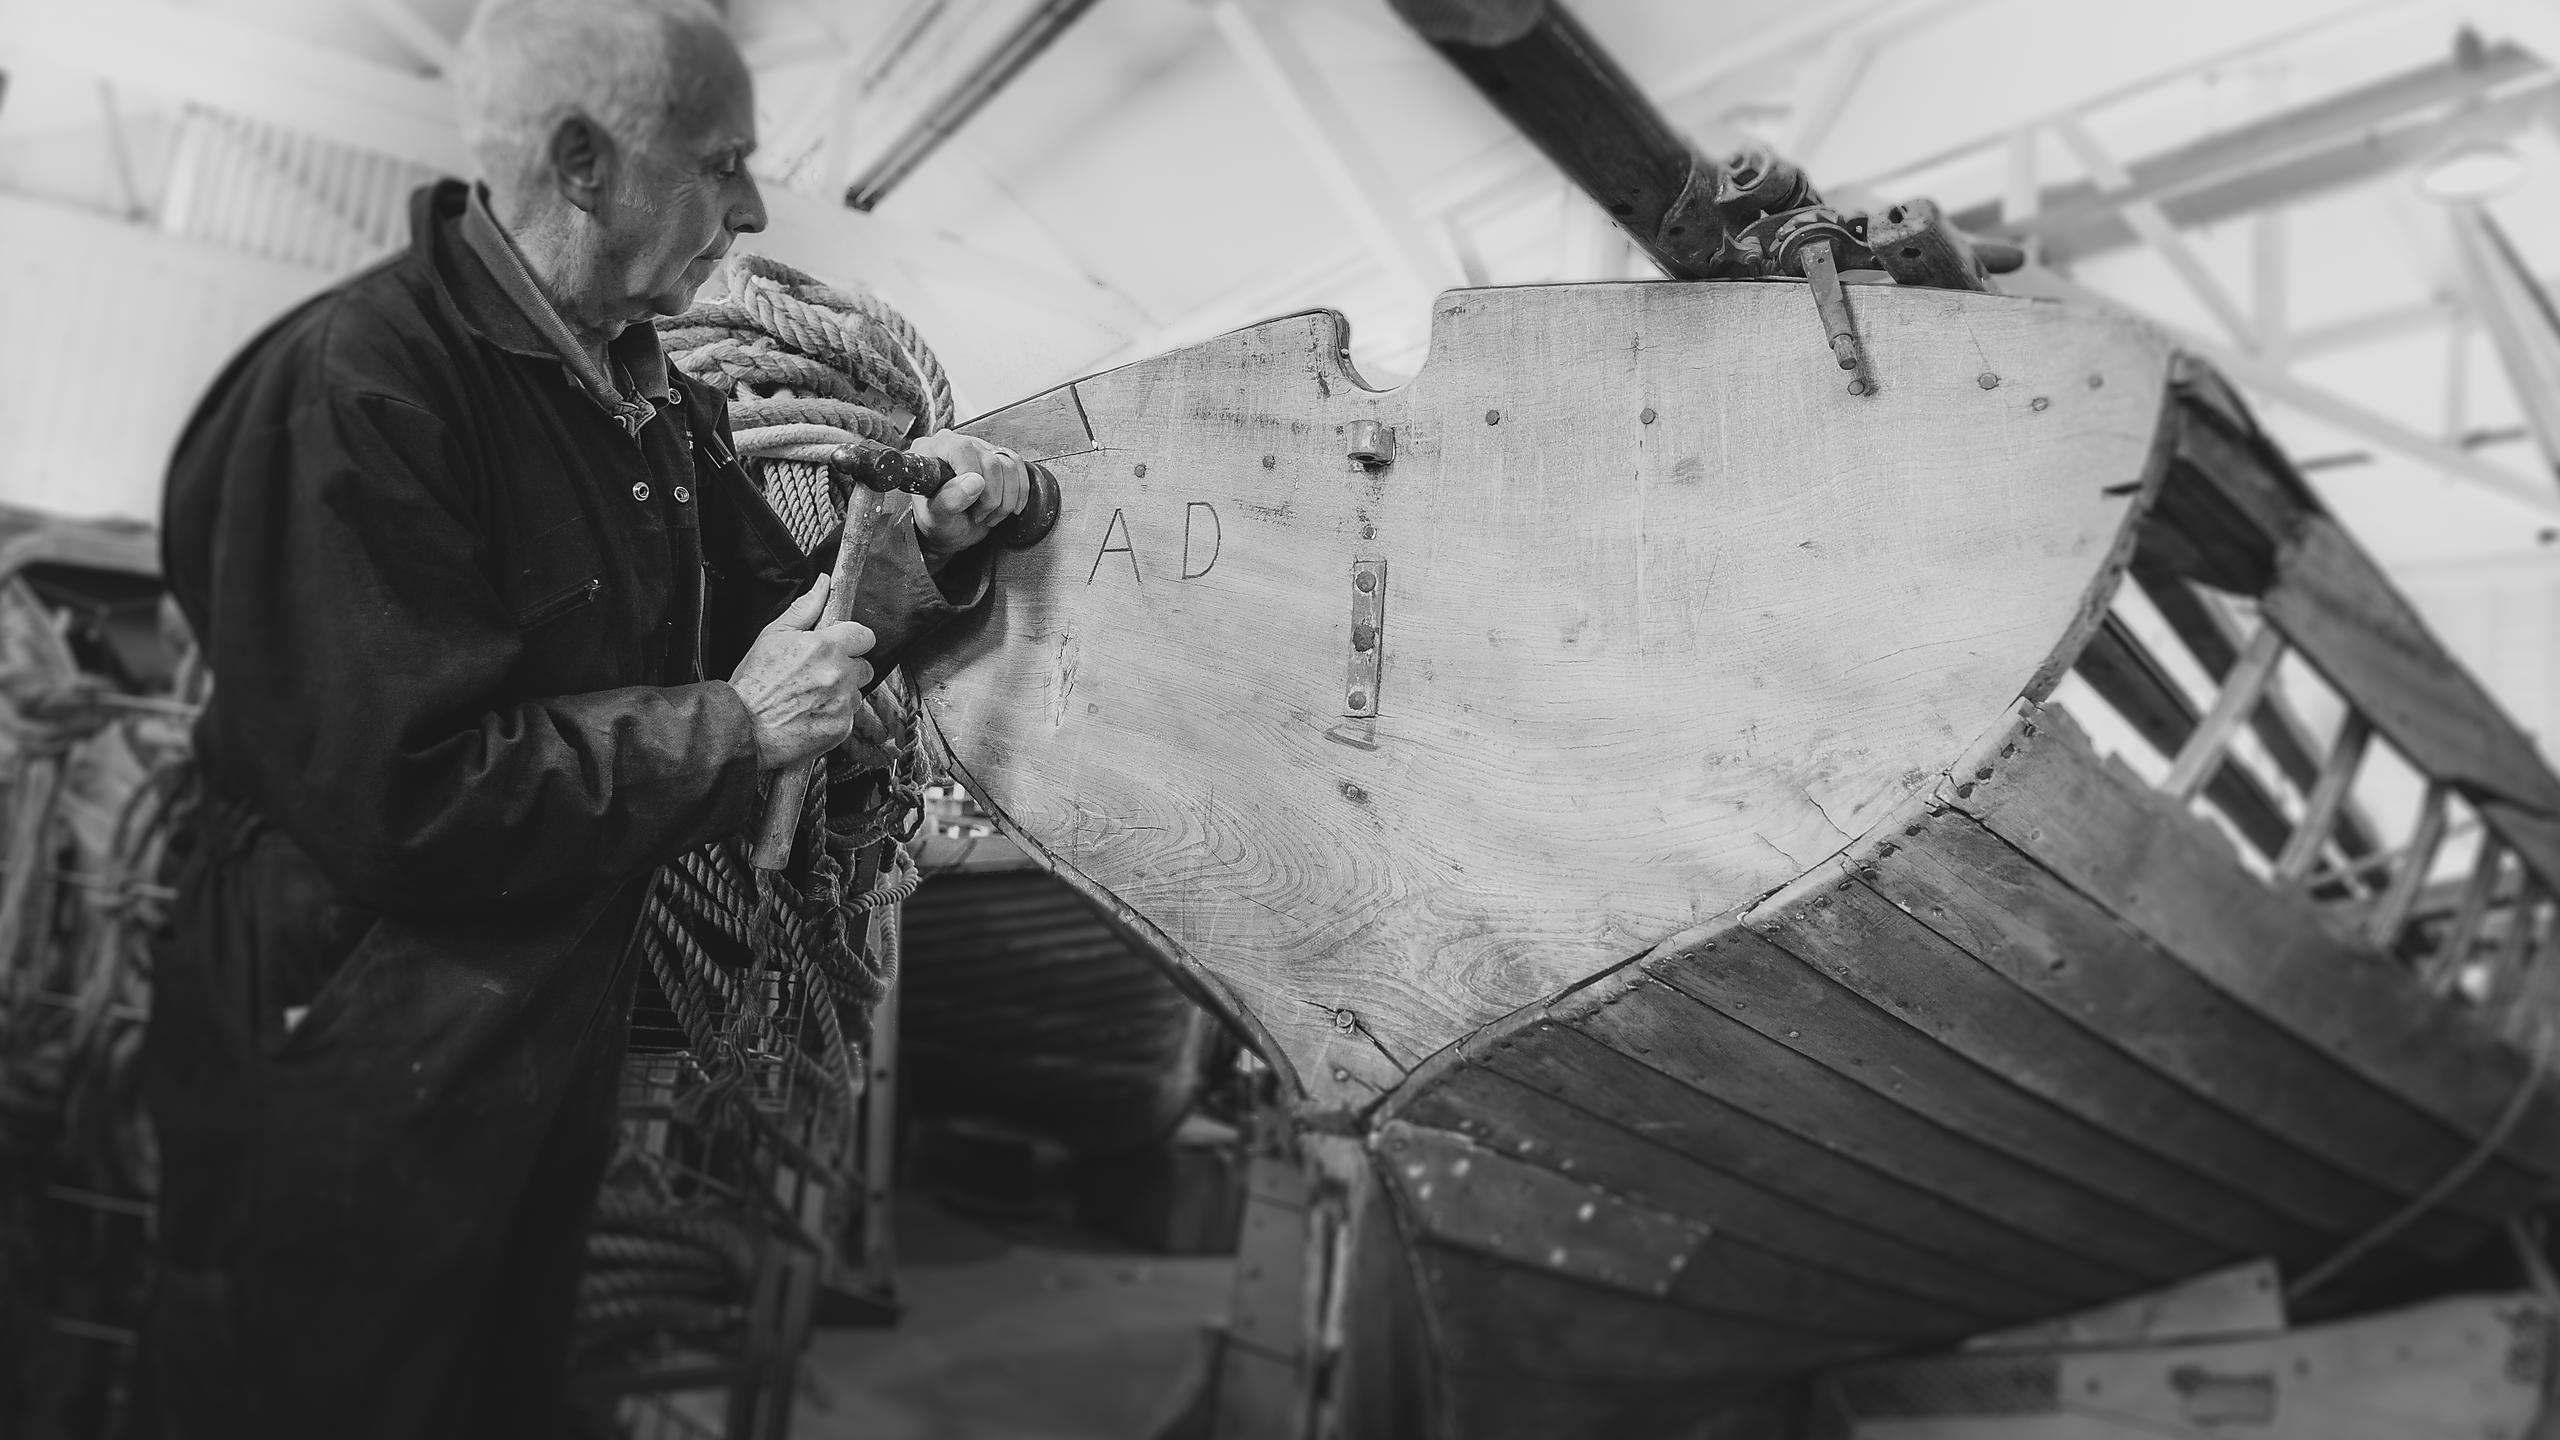 Carpenter working on Boat Restoration